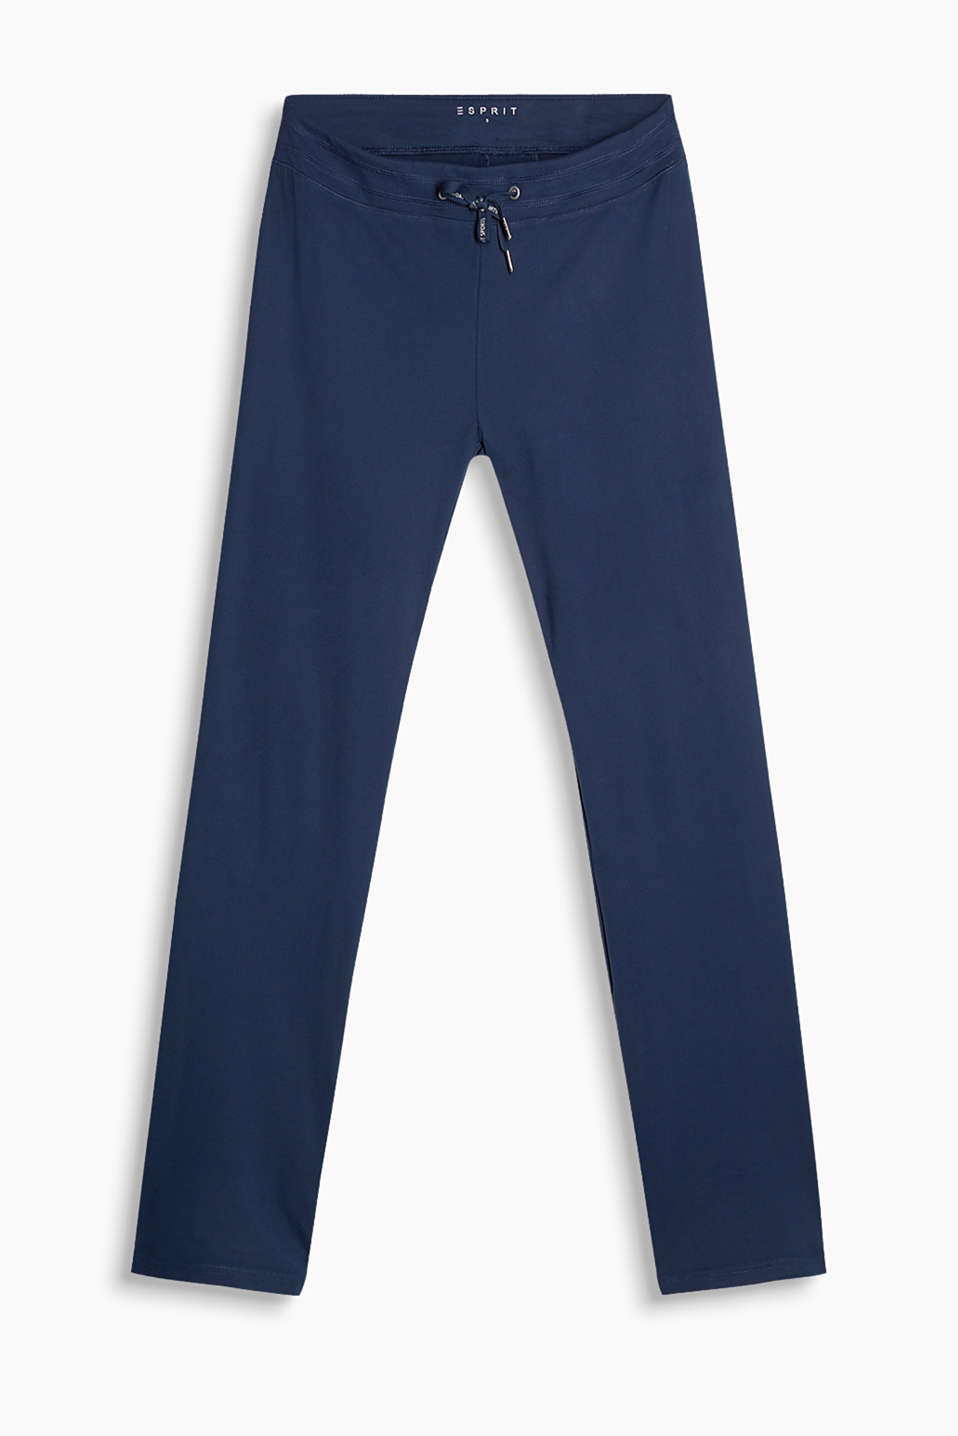 Activewear trousers with elasticated waistband and a straight leg made of high-performance jersey, E-DRY